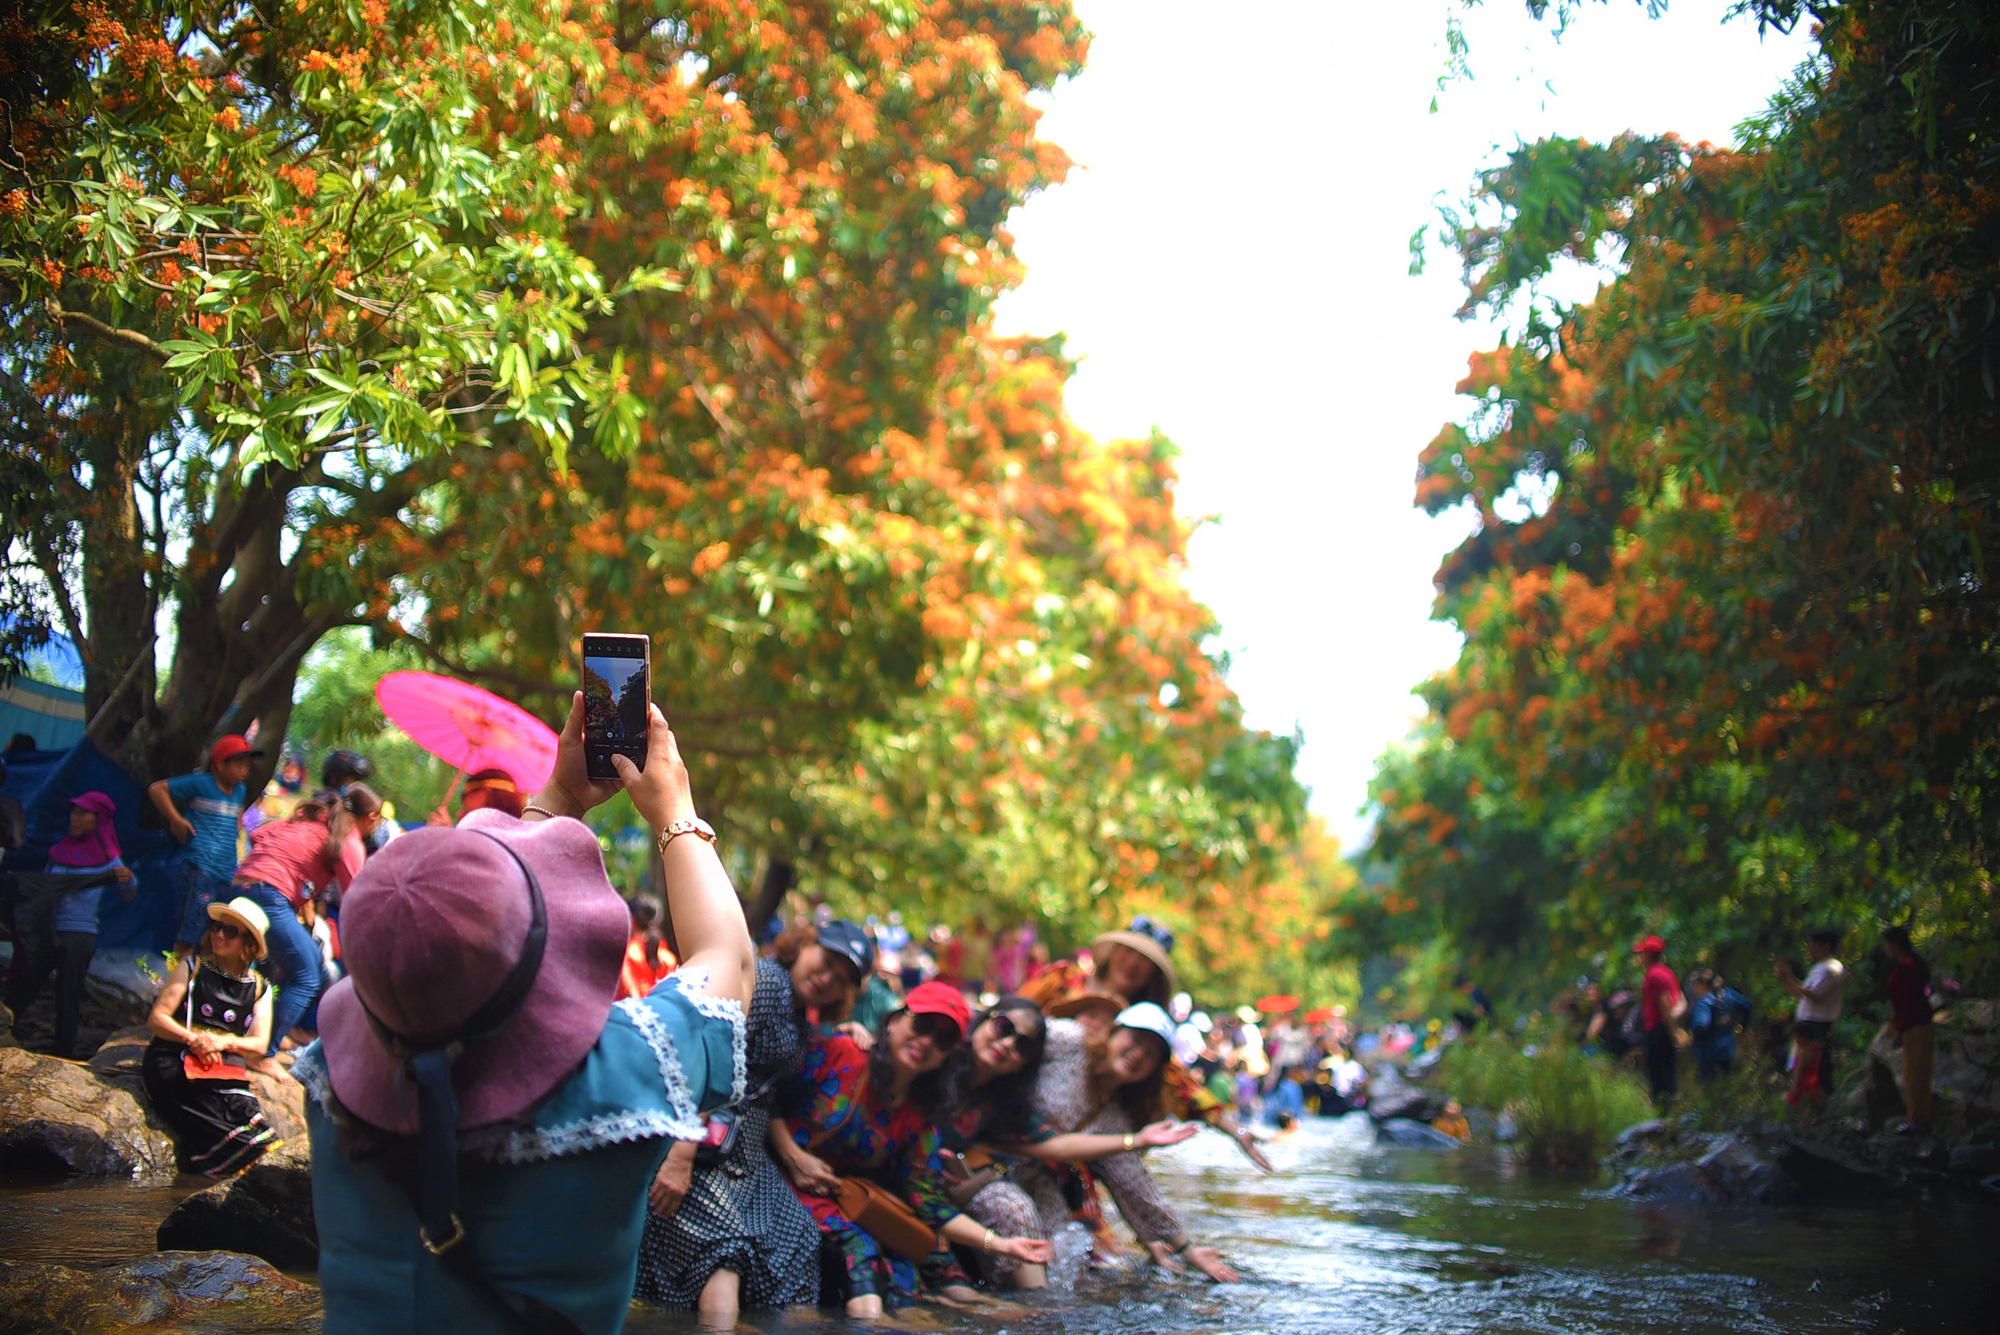 Stunning 'jungle flame' flowers lure tourists to Vietnam province